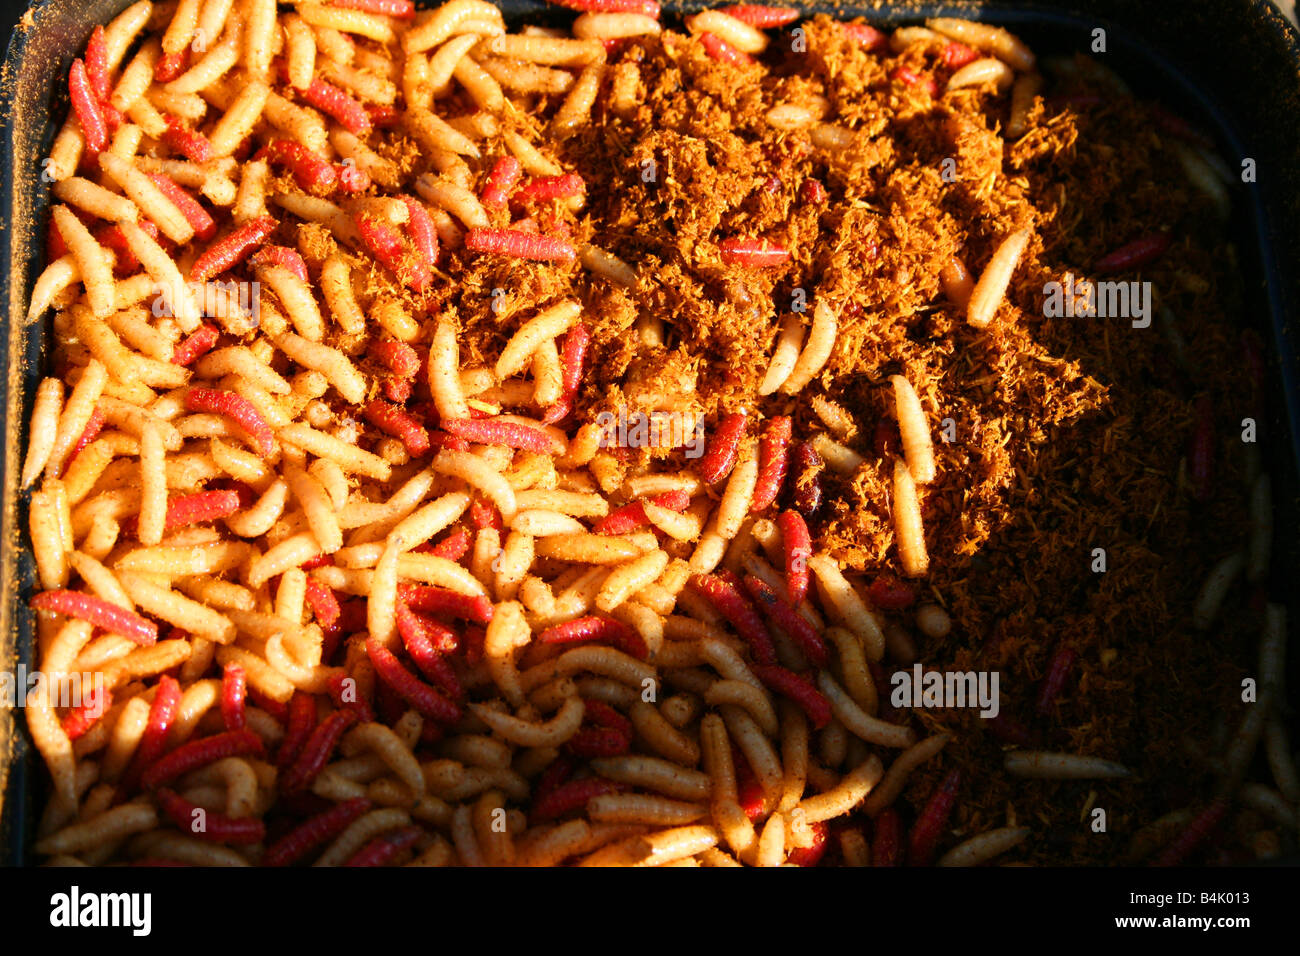 Maggots On Kitchen Floor Maggots And Flies Stock Photos Maggots And Flies Stock Images